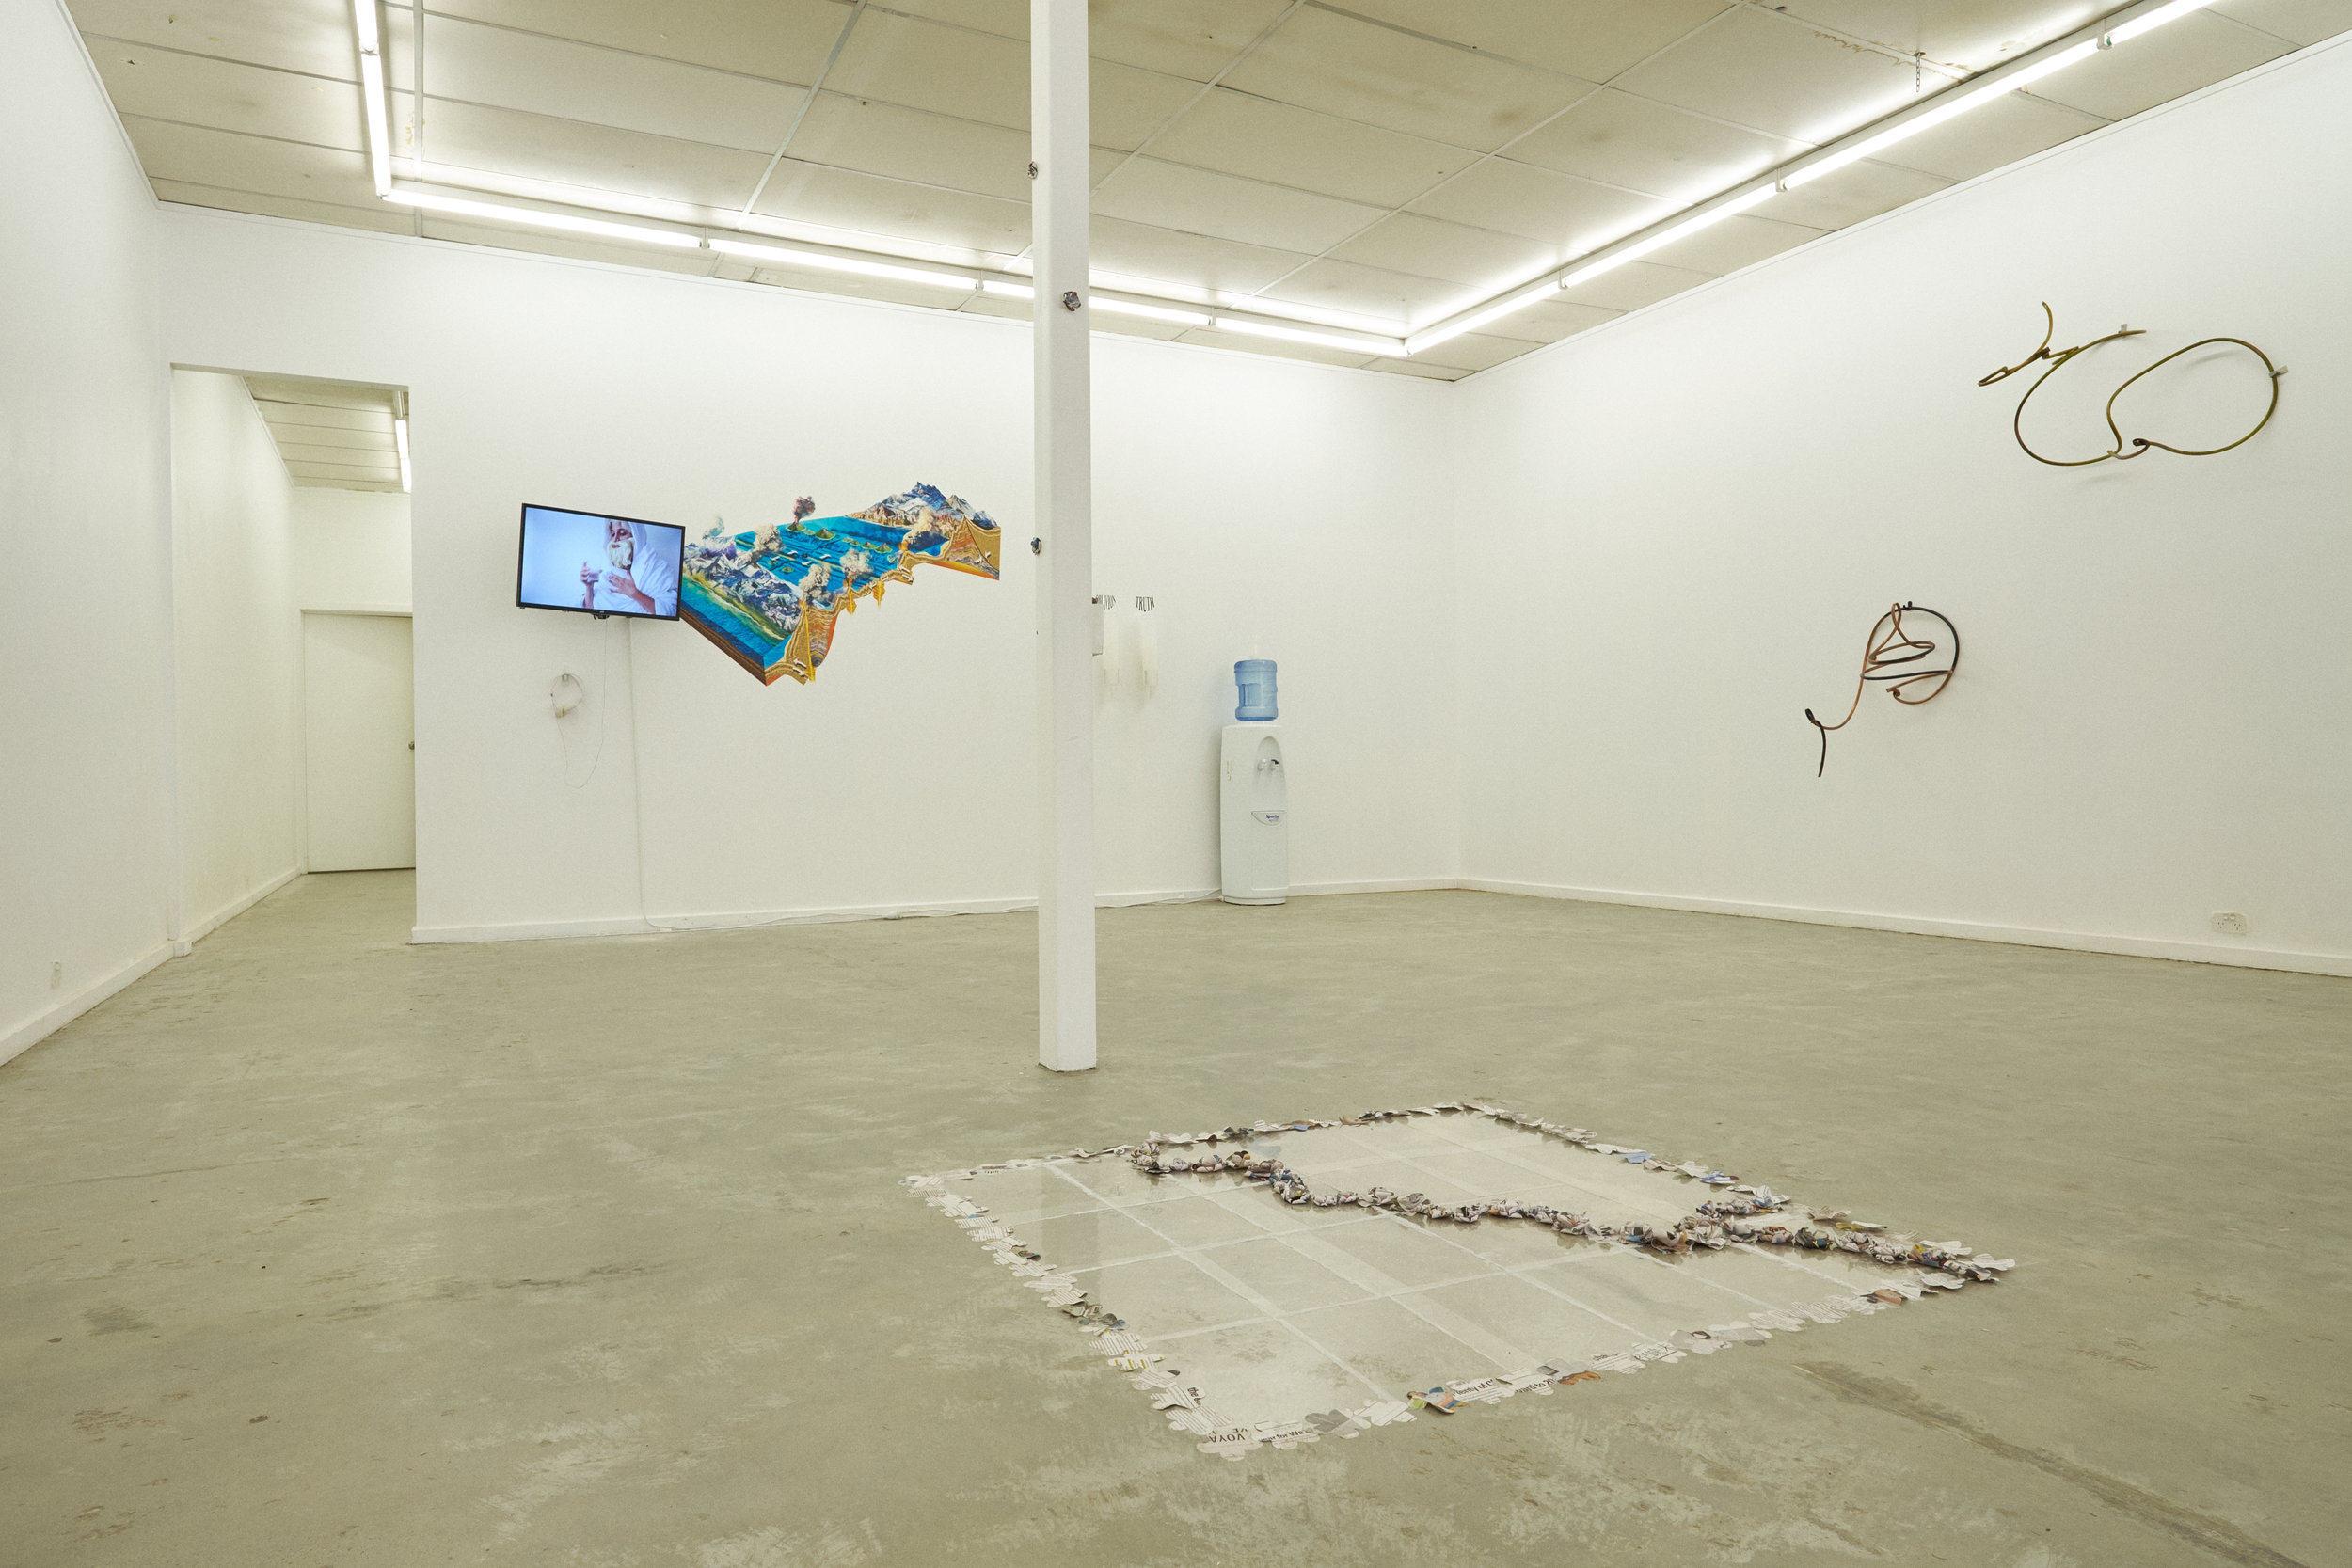 Optimal Prime Time  installation view showing work by Nerissa Kyle, Grace Marlow, Alex Degaris, Madison Bycroft, Alex Perisic and Isabella Mahoney. Photography by Christopher Arblaster. Sister Gallery, Adelaide, 2017.